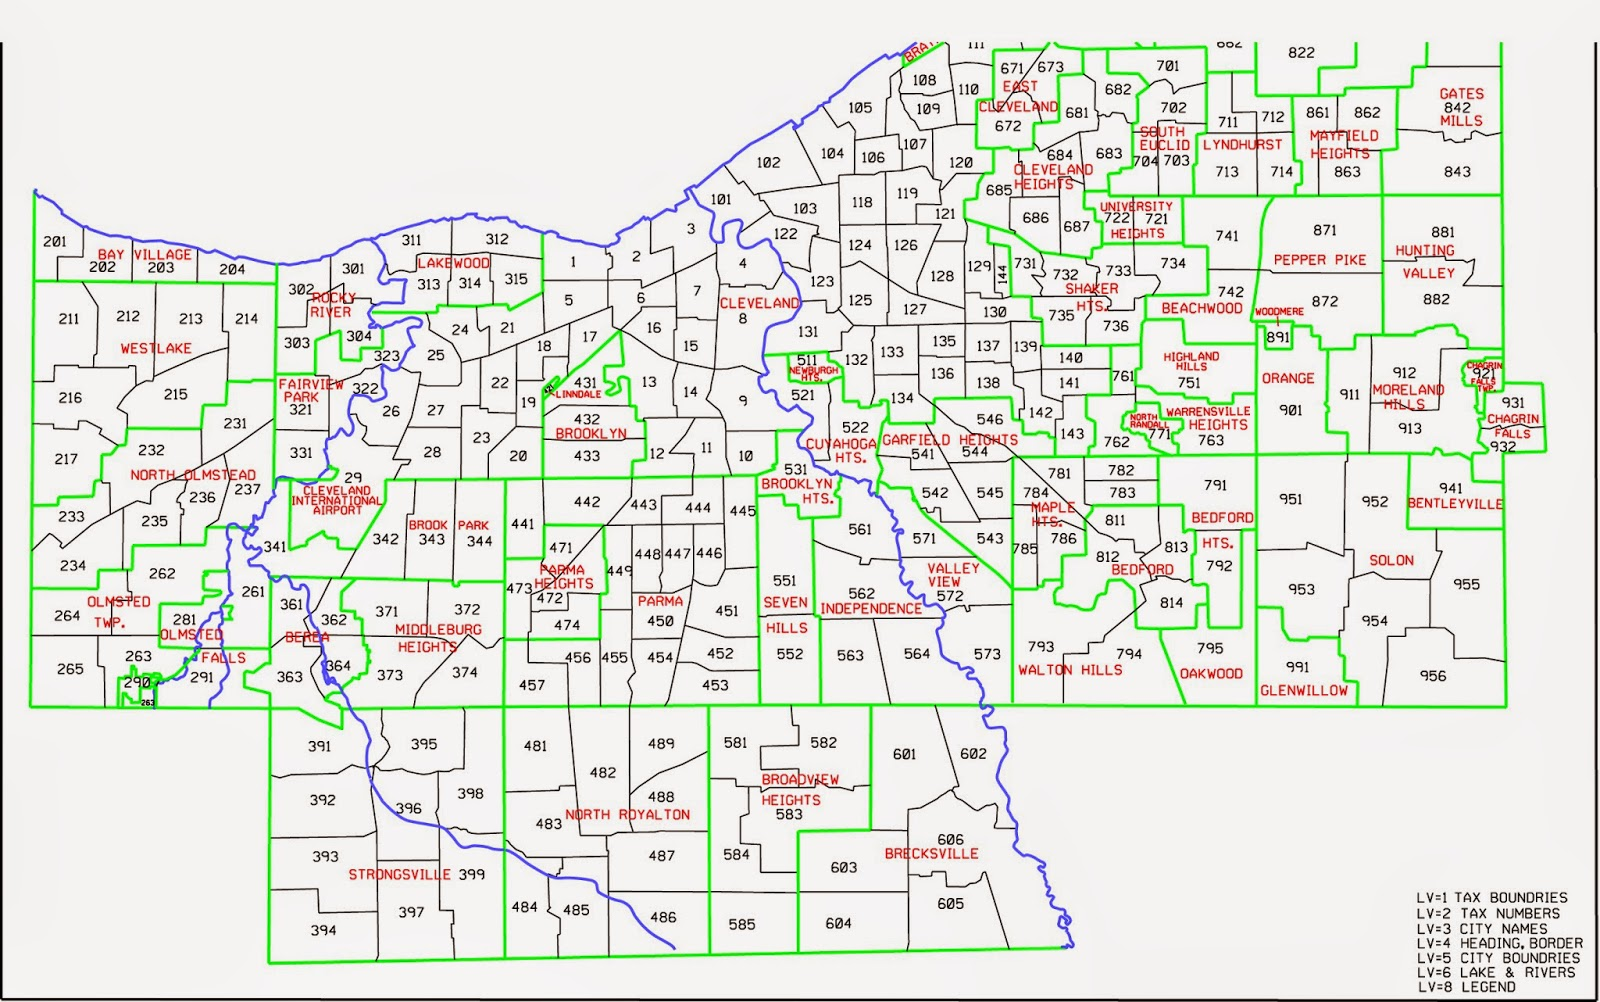 Oh Law Firm >> List of properties with delinquent taxes - Cleveland, OH and surrounding suburbs